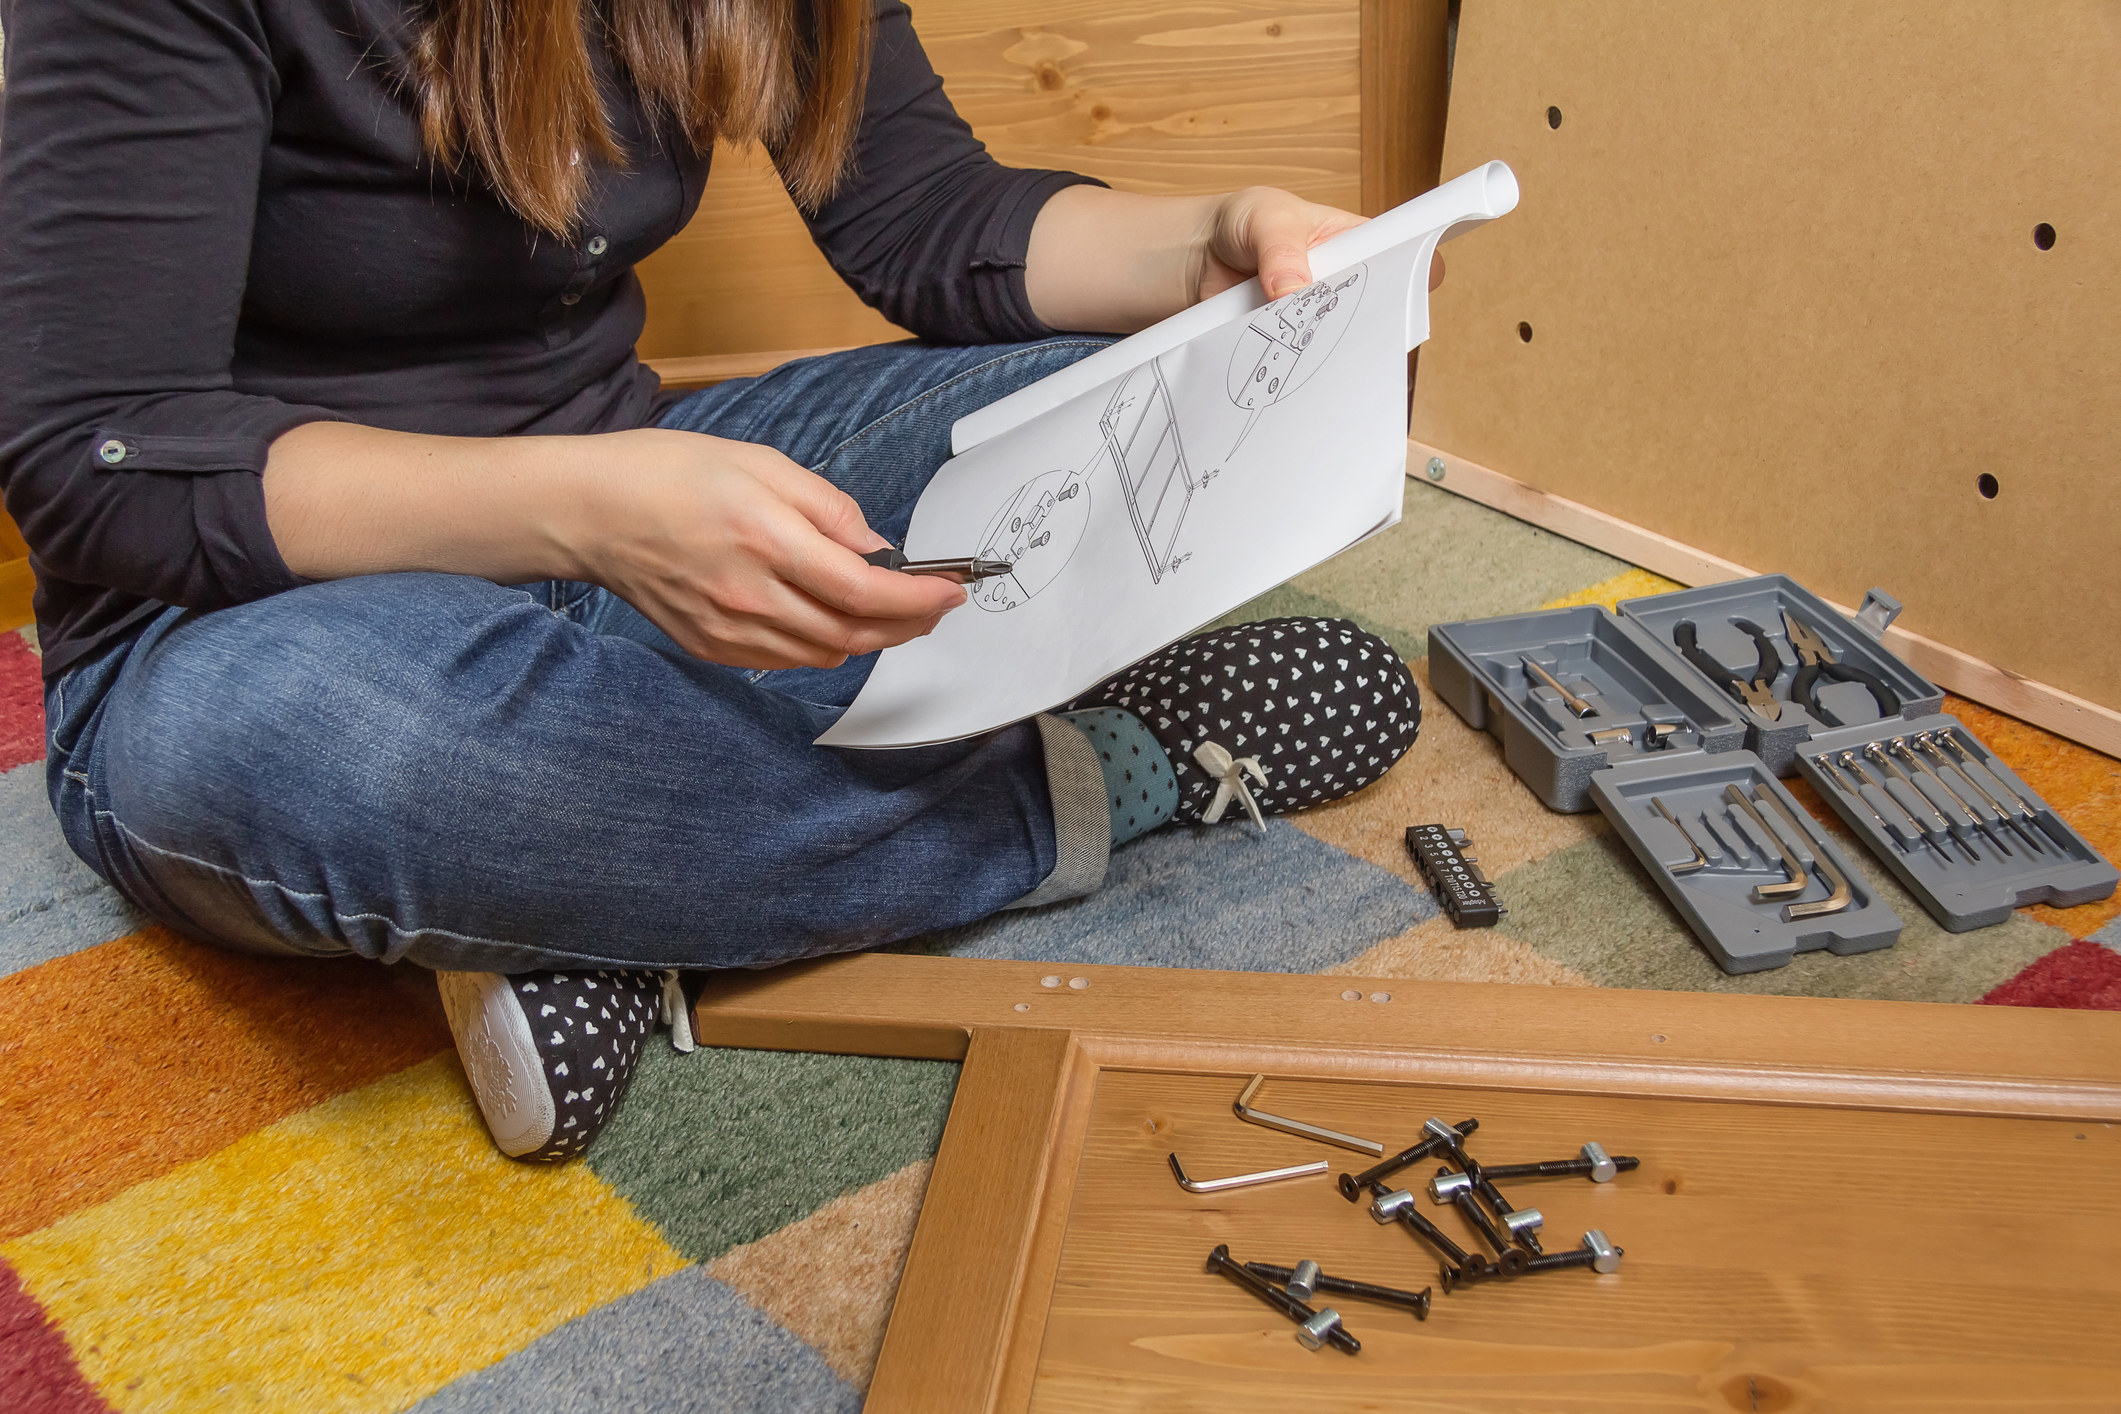 Woman assembling a piece of furniture reading the instruction manual